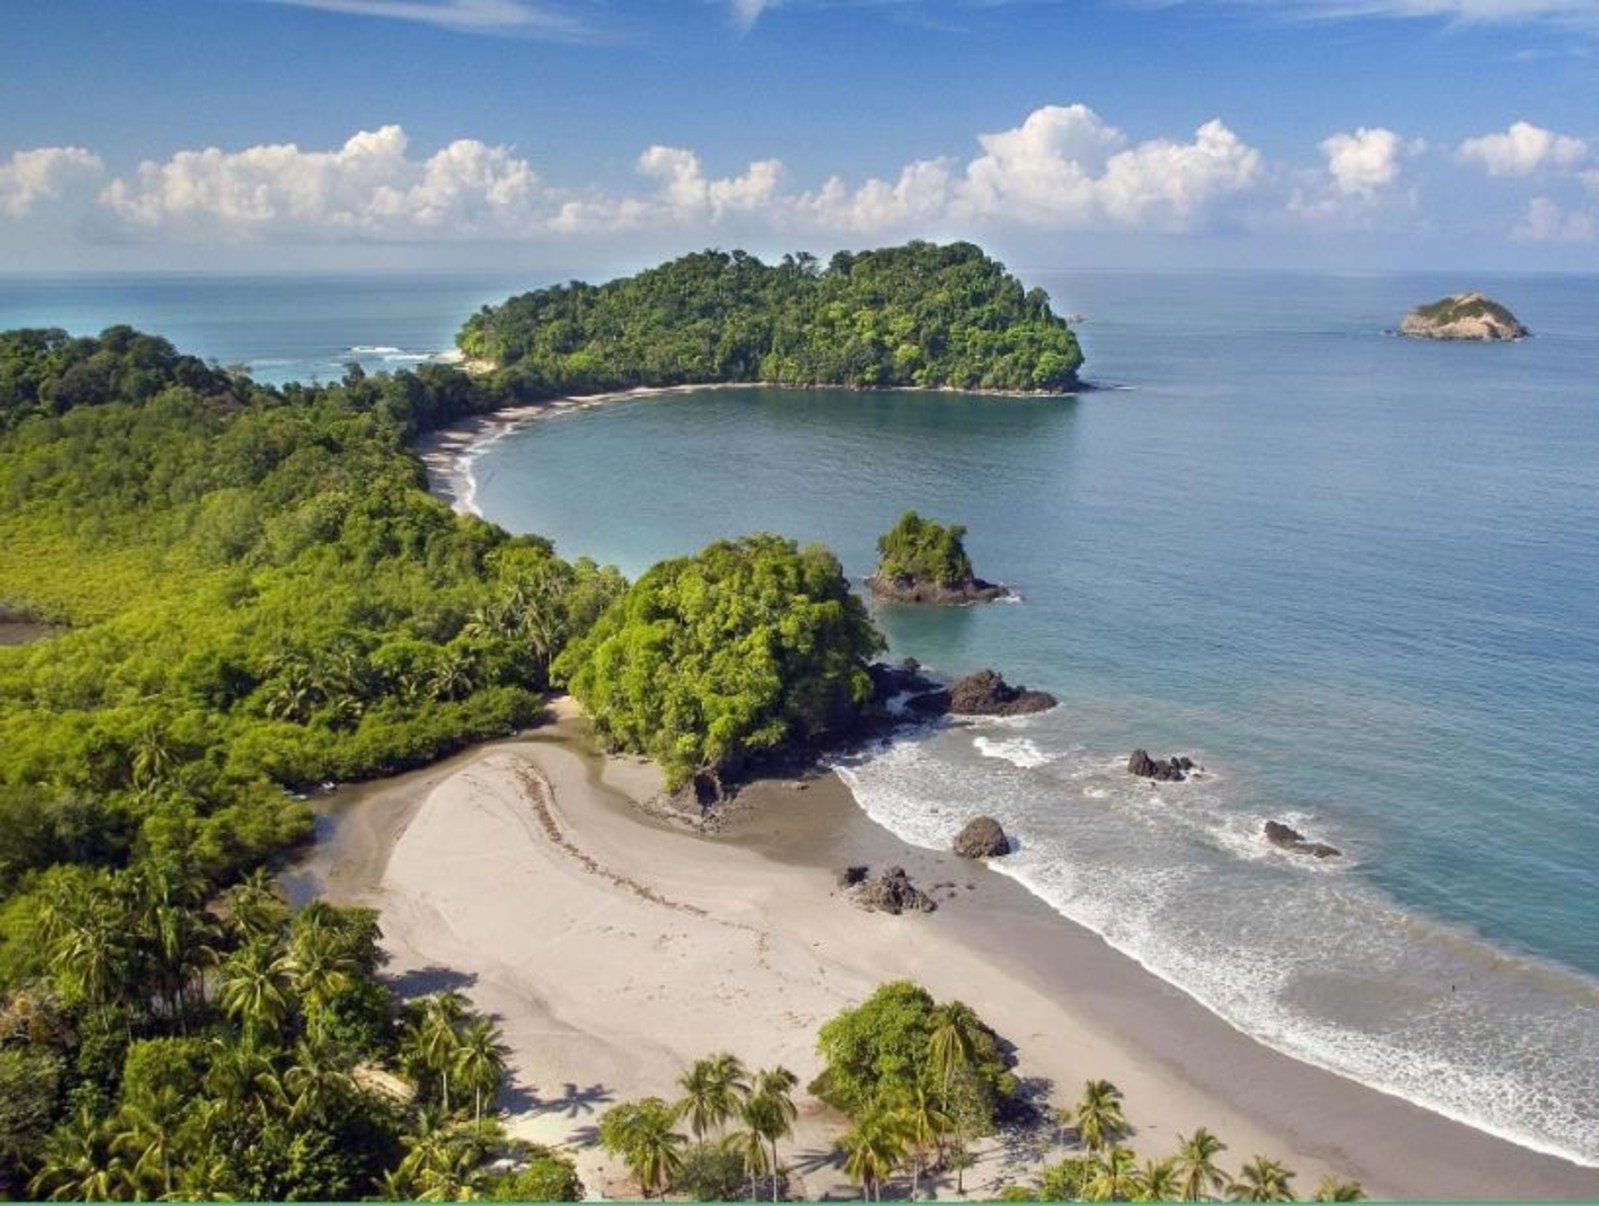 Top Three Most Visited National Parks in Costa Rica